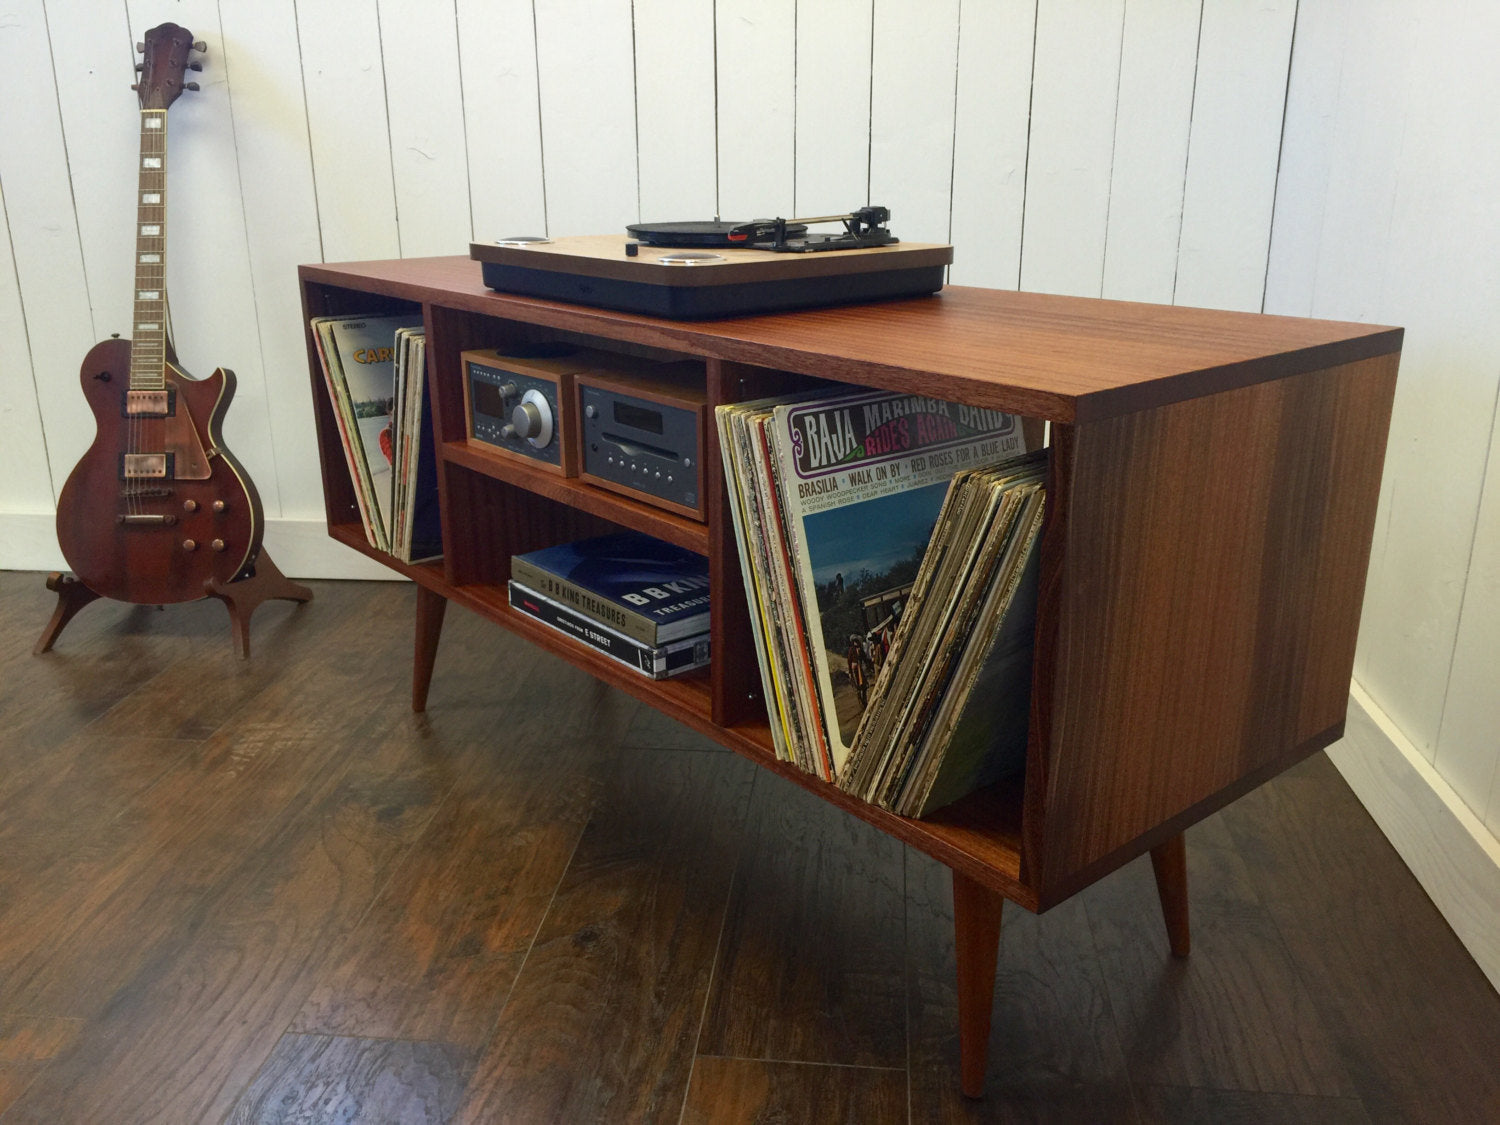 turntable furniture. Large Stereo, Turntable And Album Storage Console, Shown In Sapele Mahogany. Furniture F